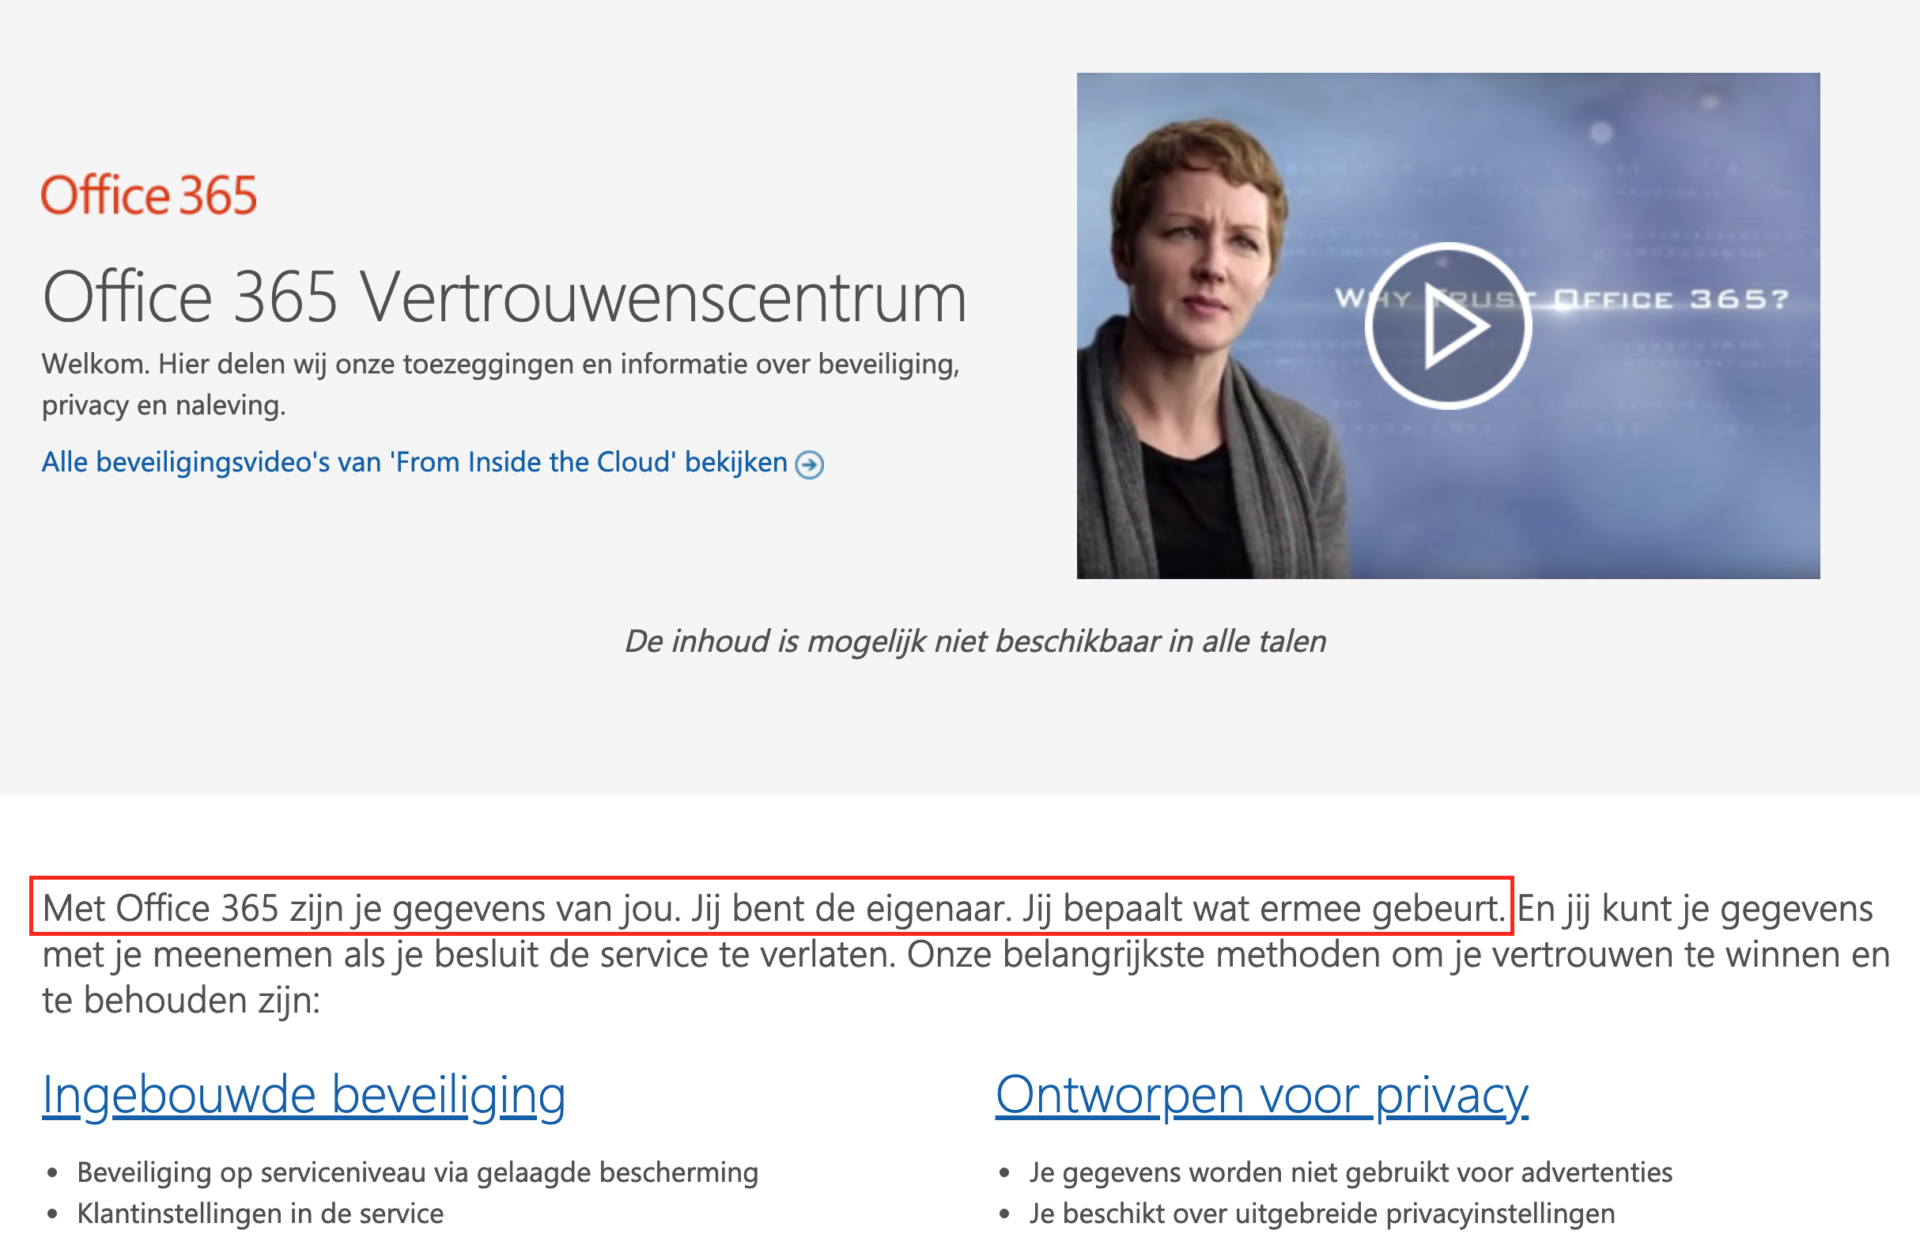 Microsoft jij beheert de data